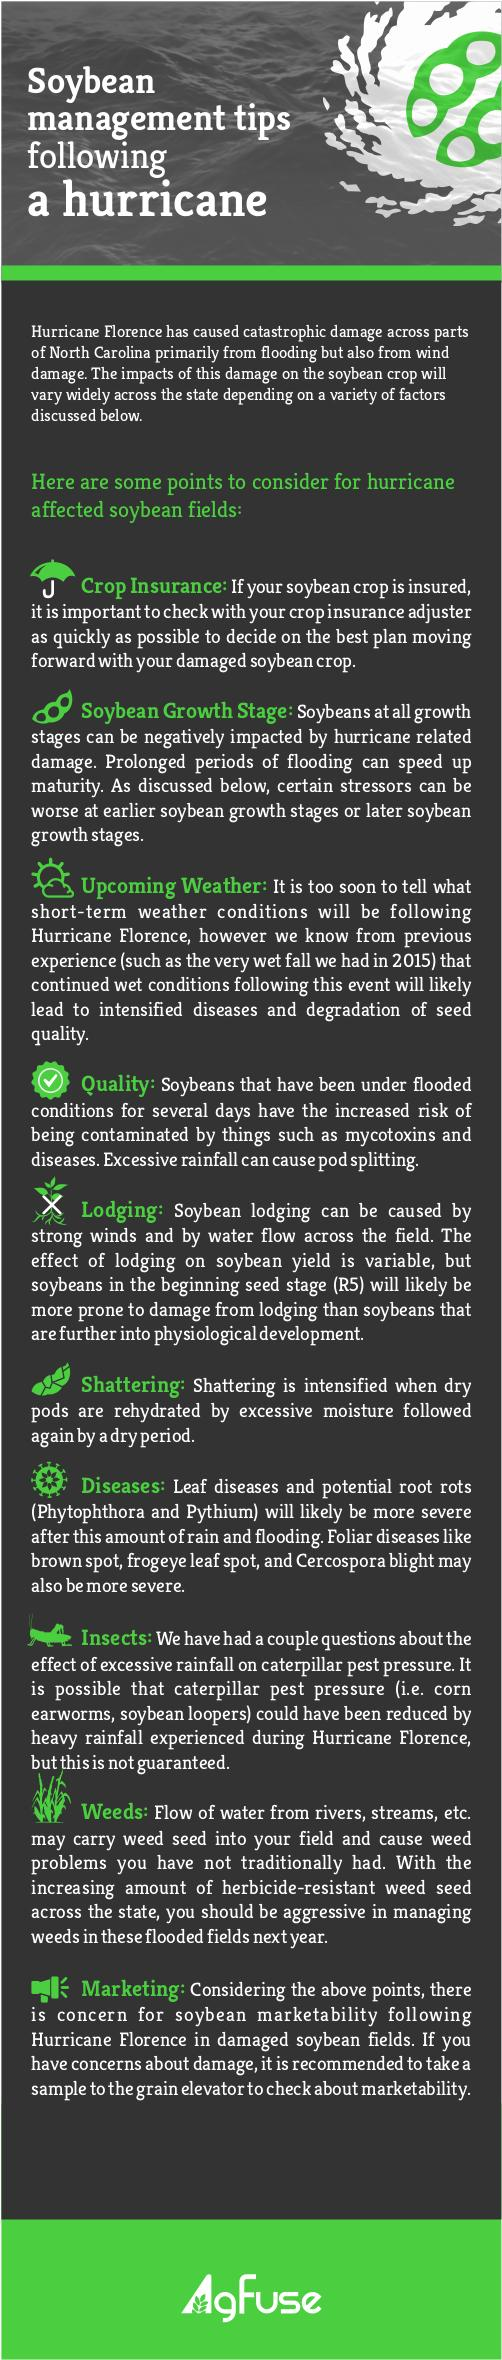 Soybean Management Tips Following a Hurricane Infographic